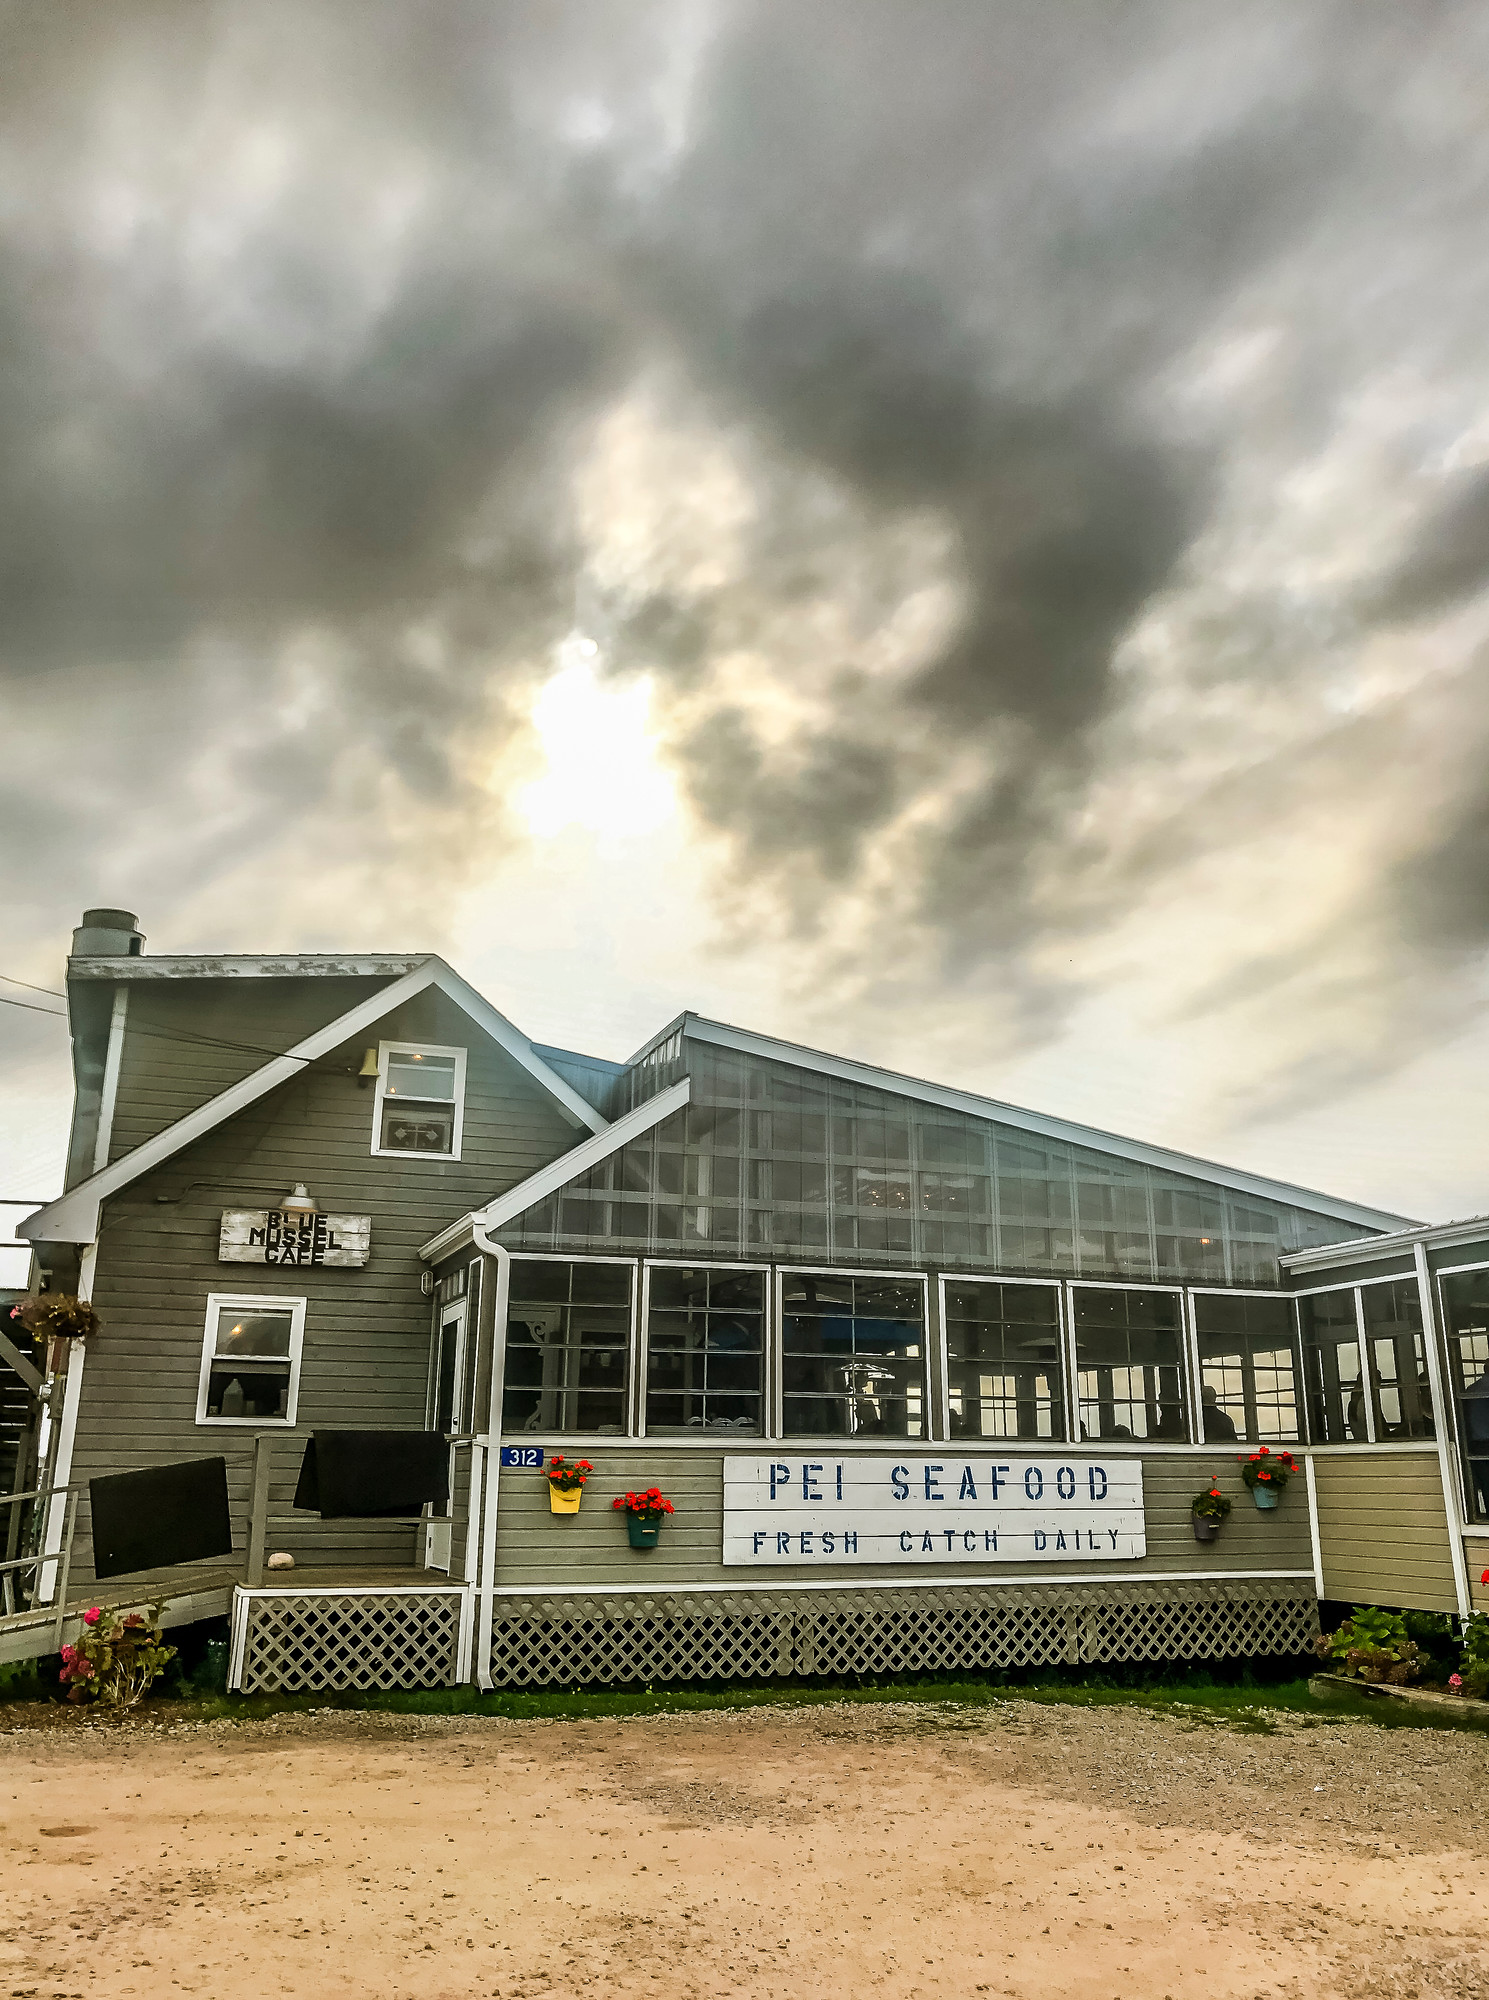 Where to Eat in PEI: Blue Mussel Cafe in North Rustico has great food in a quaint setting.